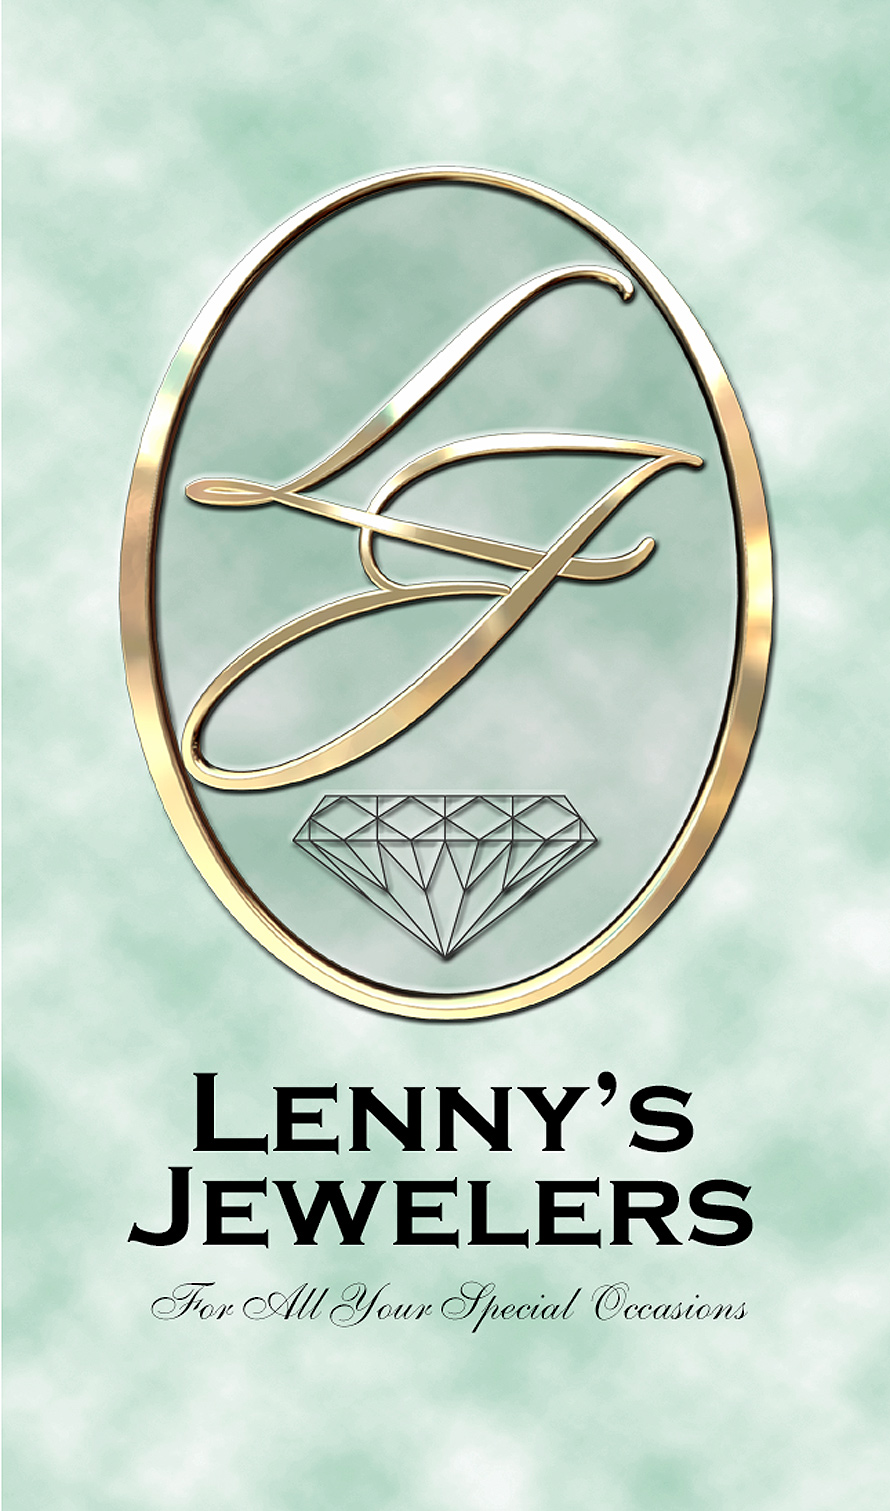 Lenny's Jewelers For All Your Special Occasions